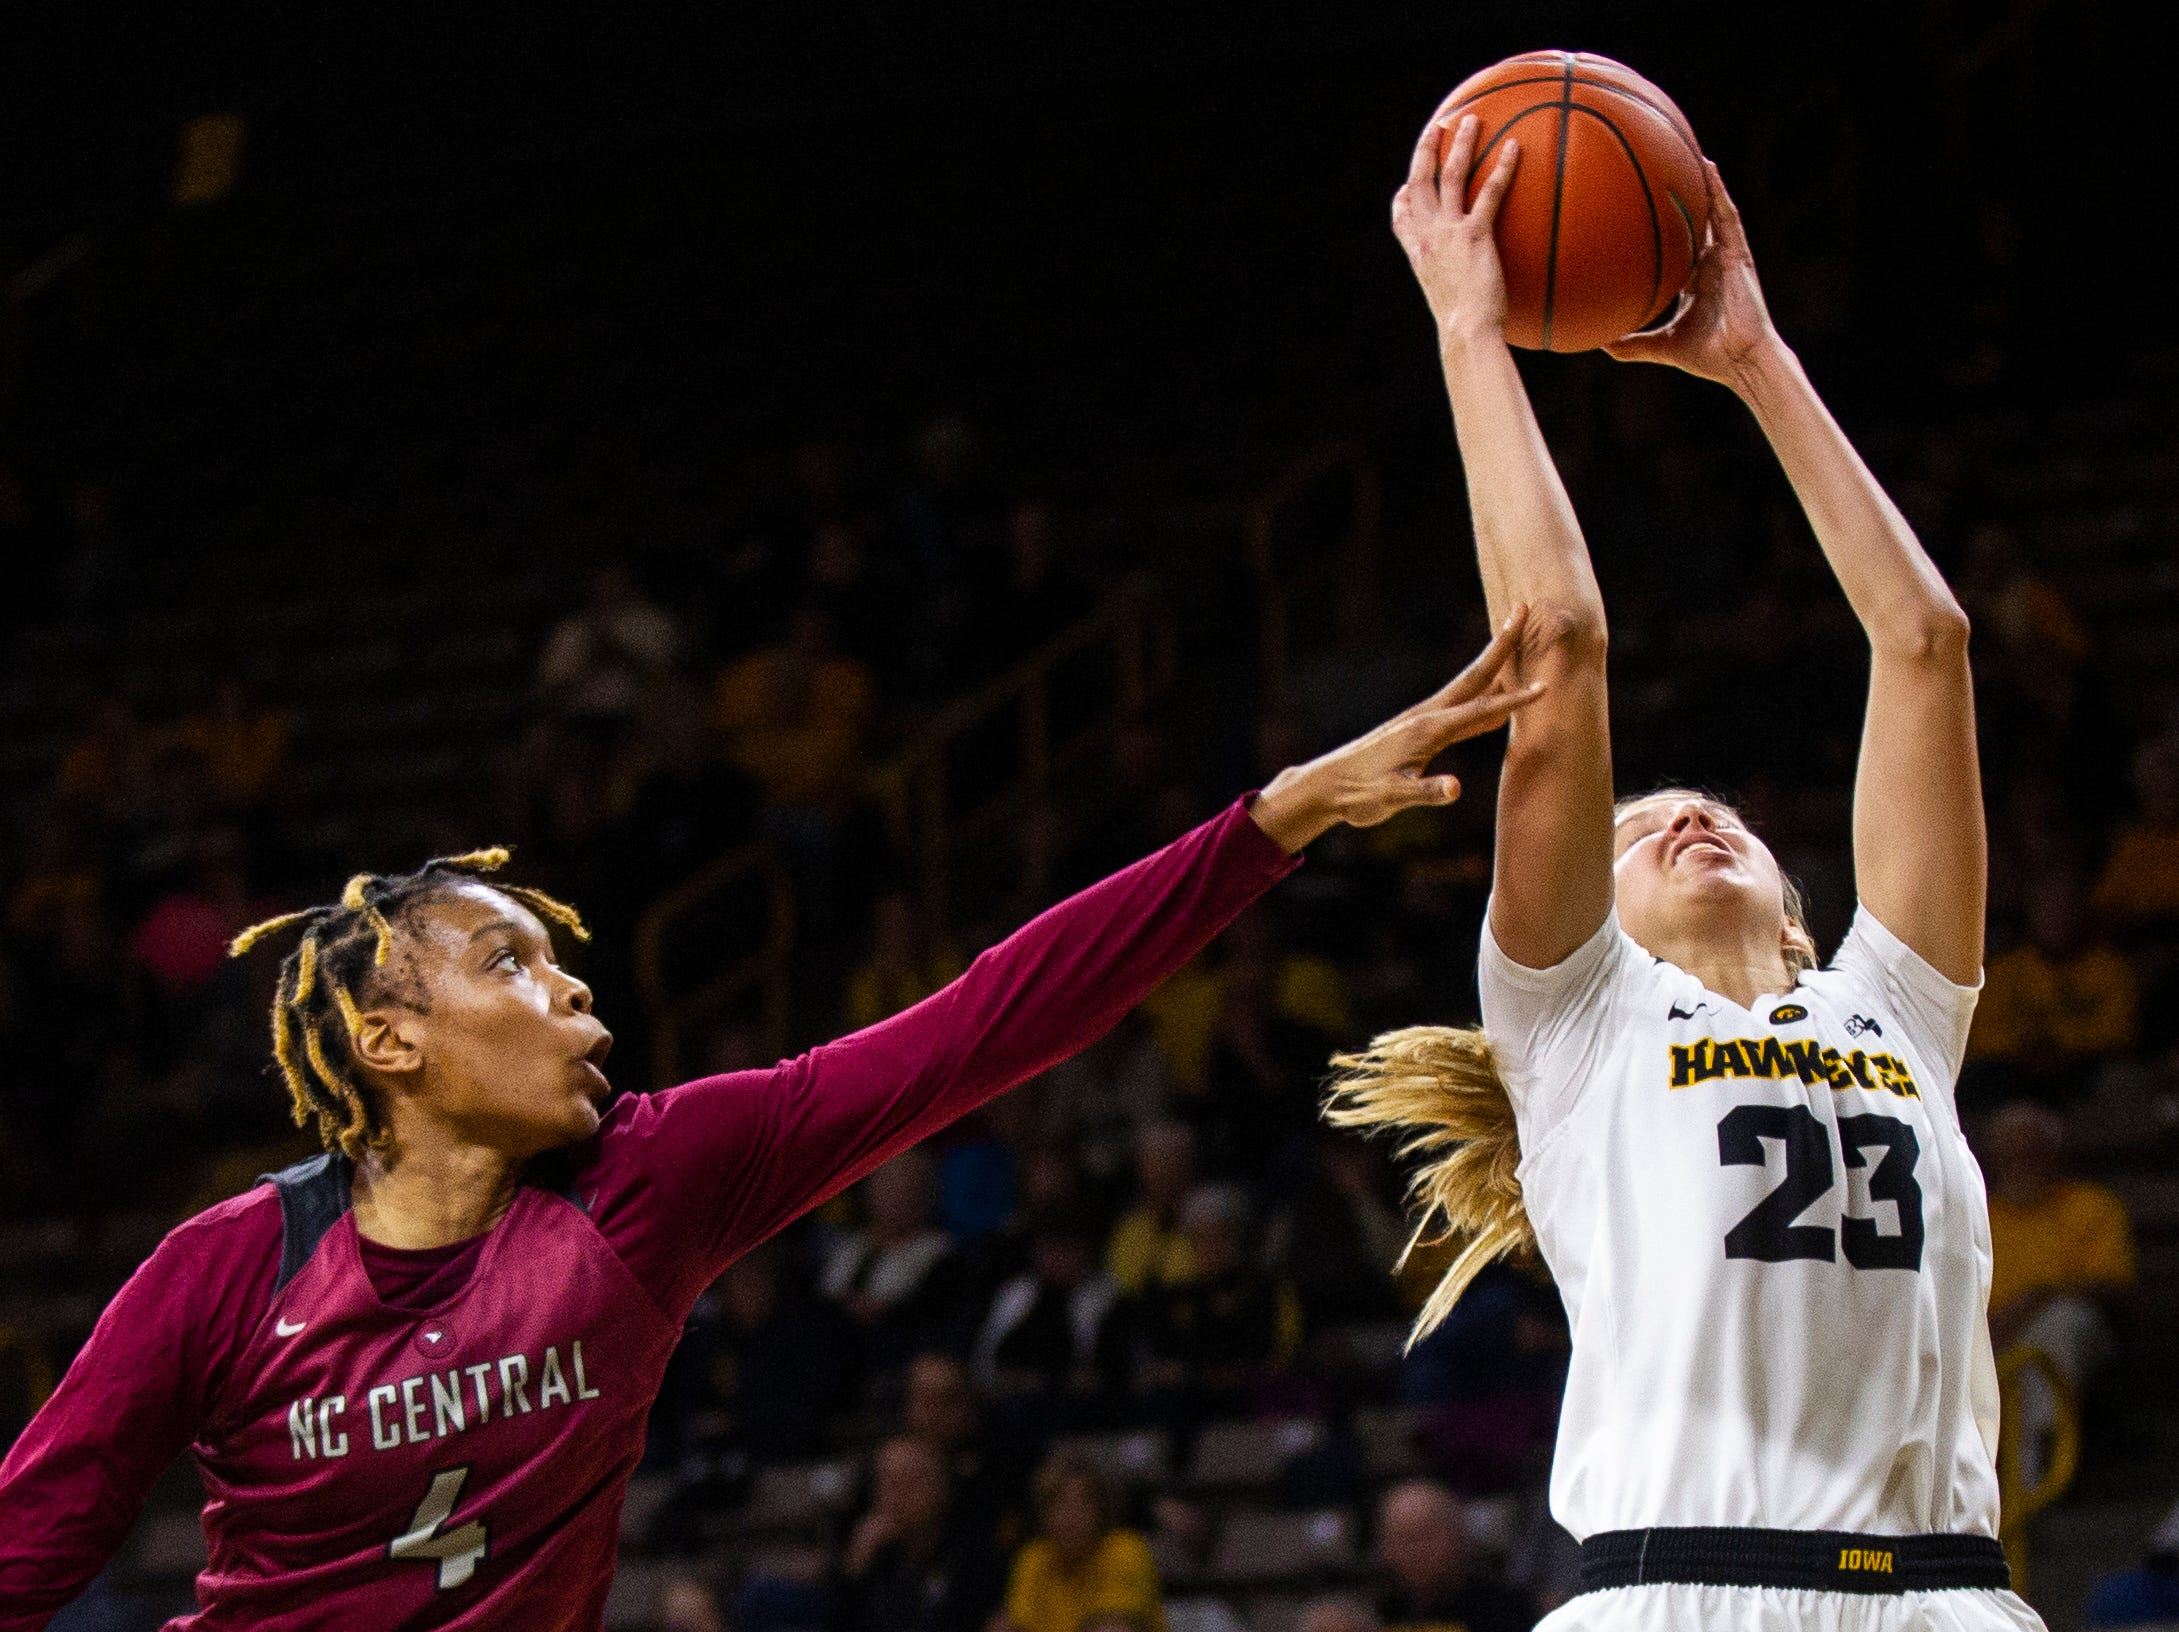 Iowa forward Logan Cook (23) grabs a defensive rebound past North Carolina Central's Paulina Afriyie (4) during an NCAA women's basketball game on Saturday, Nov. 17, 2018, at Carver-Hawkeye Arena in Iowa City.